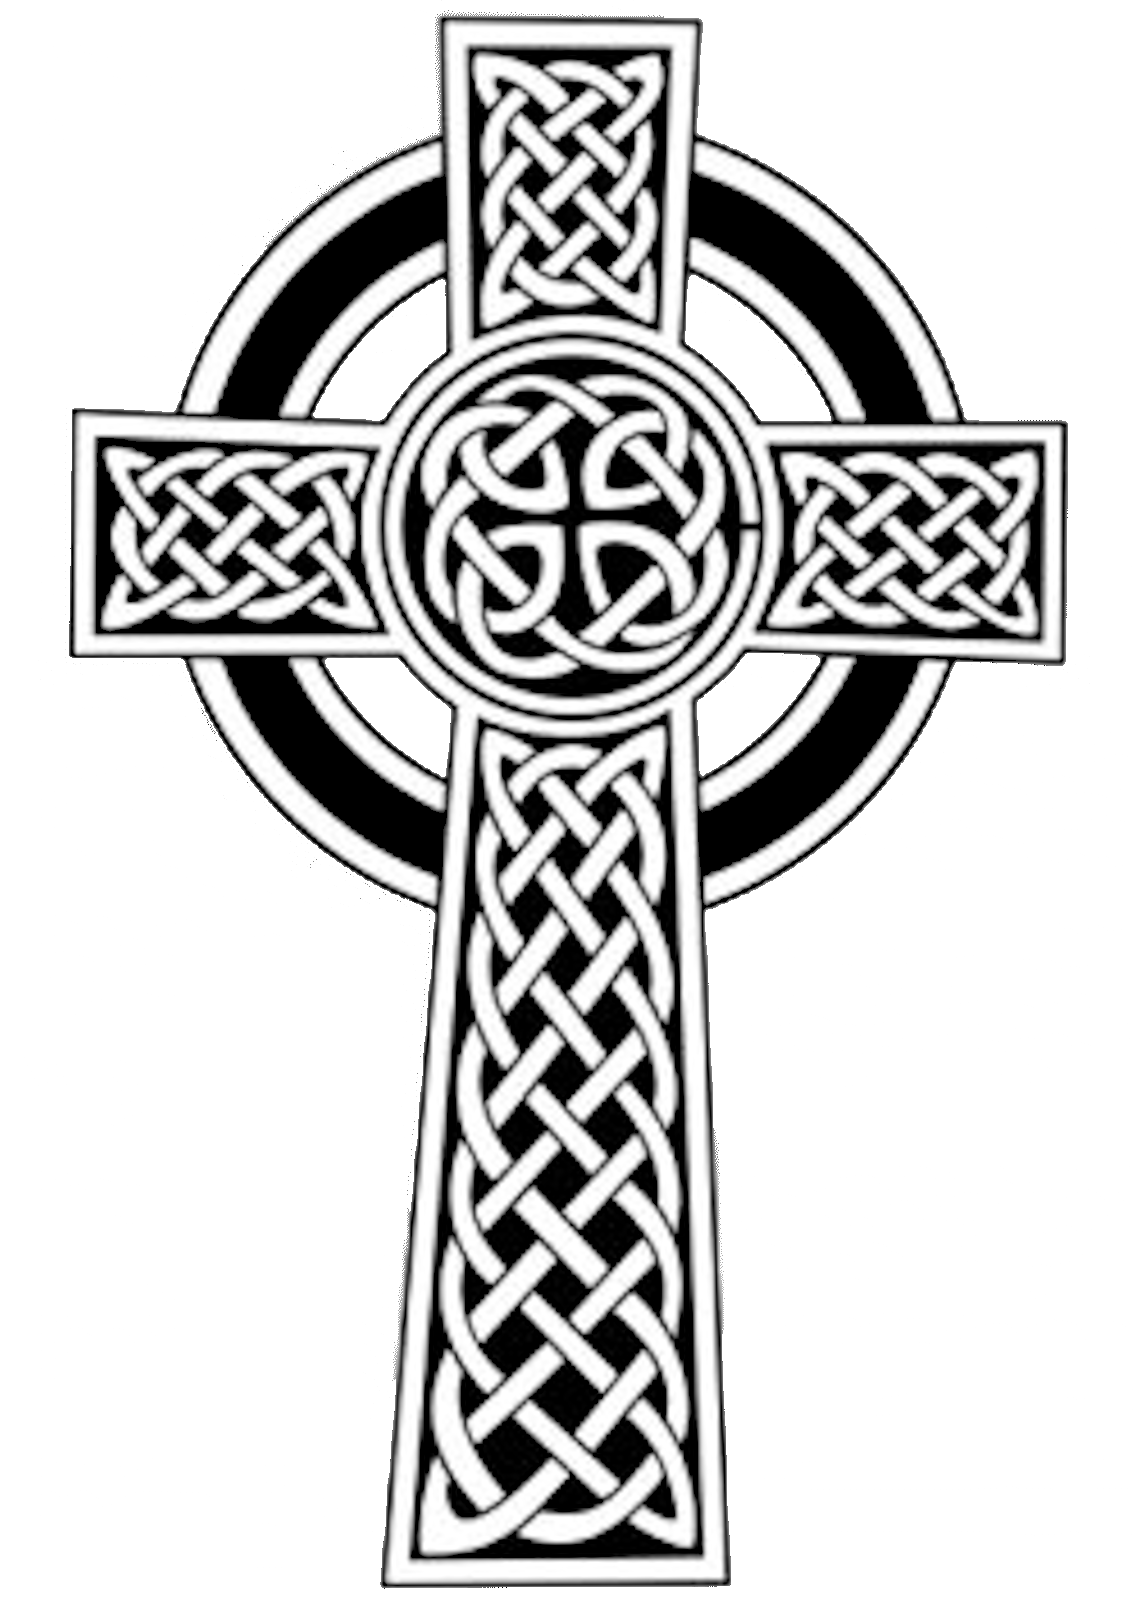 Grunge cross clipart clipart black and white stock Celtic Cross   Free Images at Clker.com - vector clip art online ... clipart black and white stock